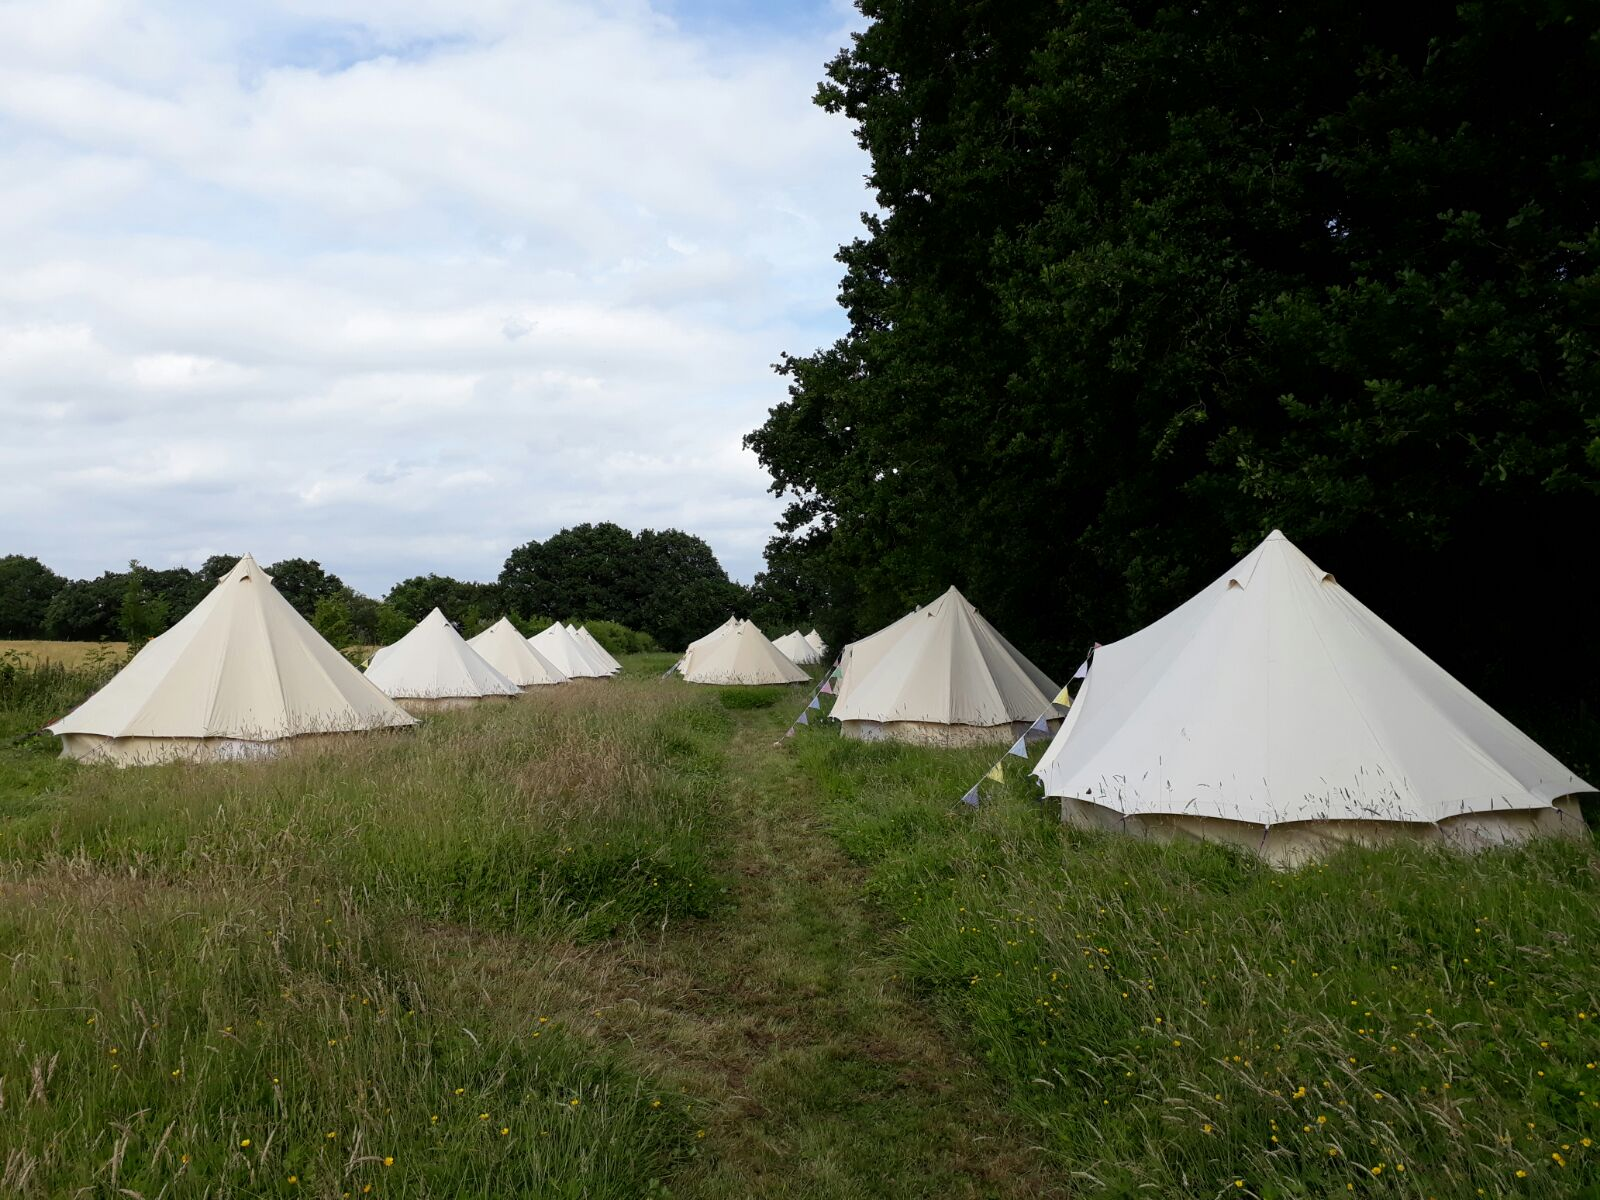 Sandstone Bell Tents in a Field